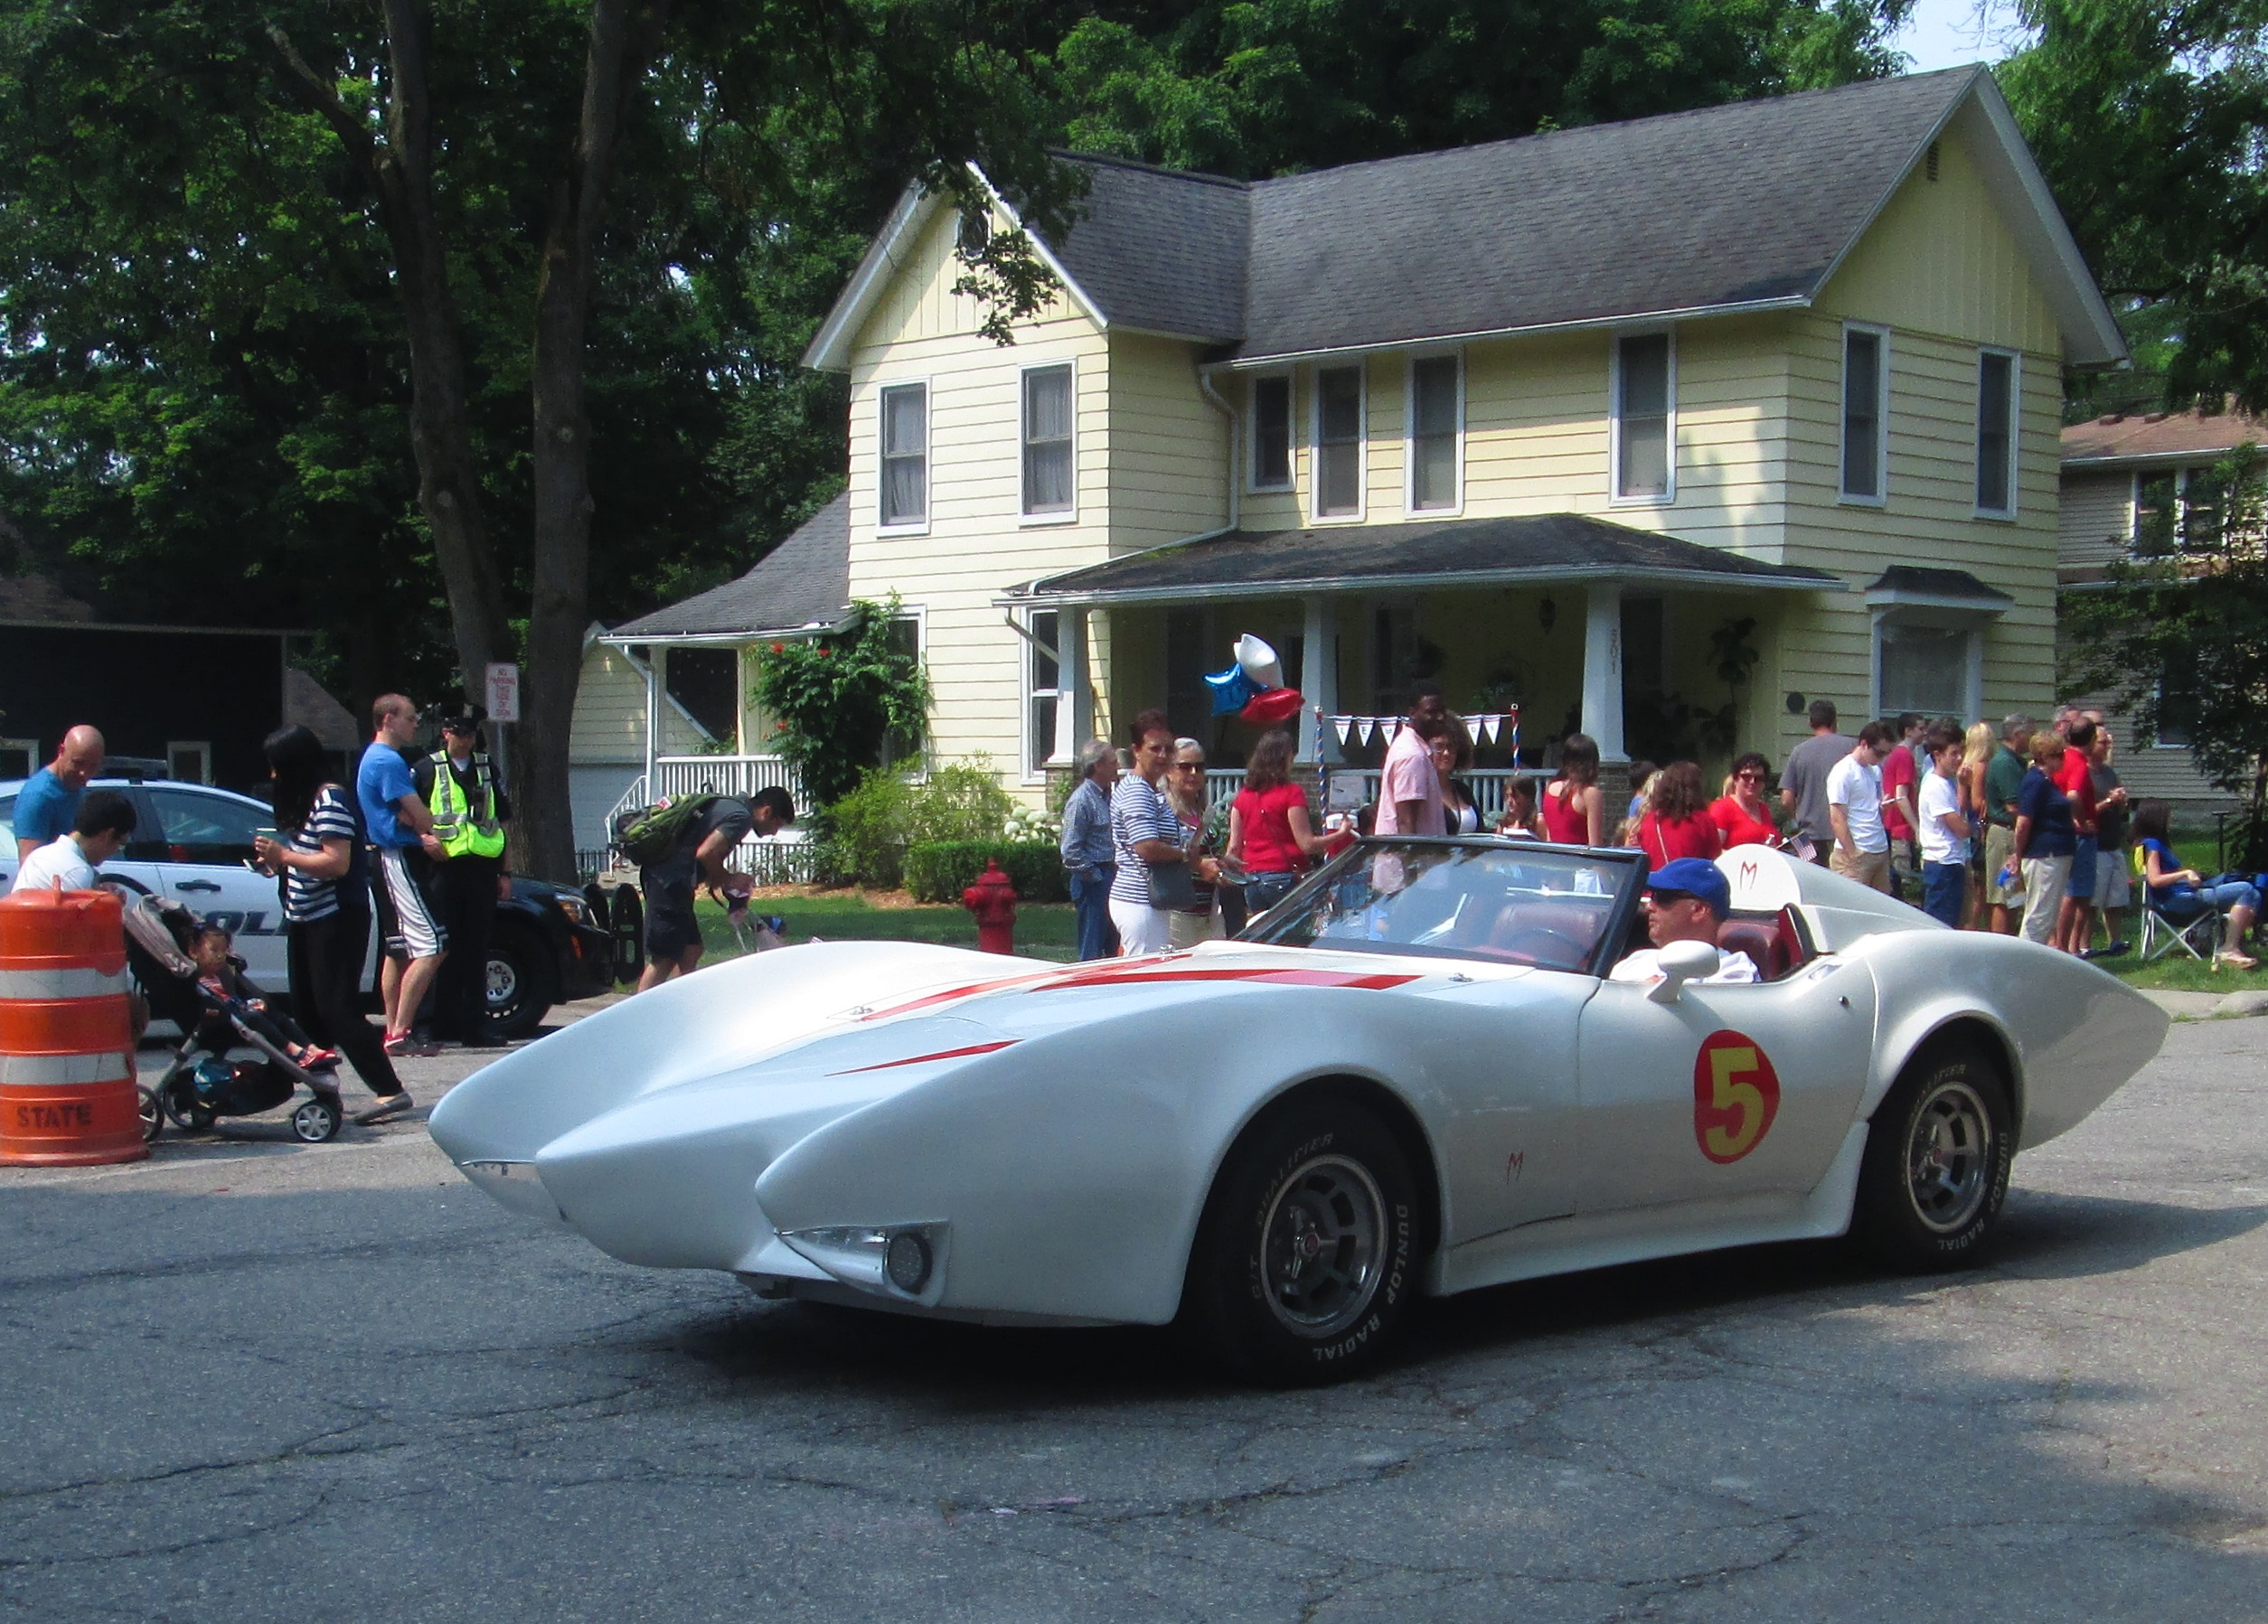 Unique File:Mach 5 Speed Racer.jpg - Wikimedia Commons ER44